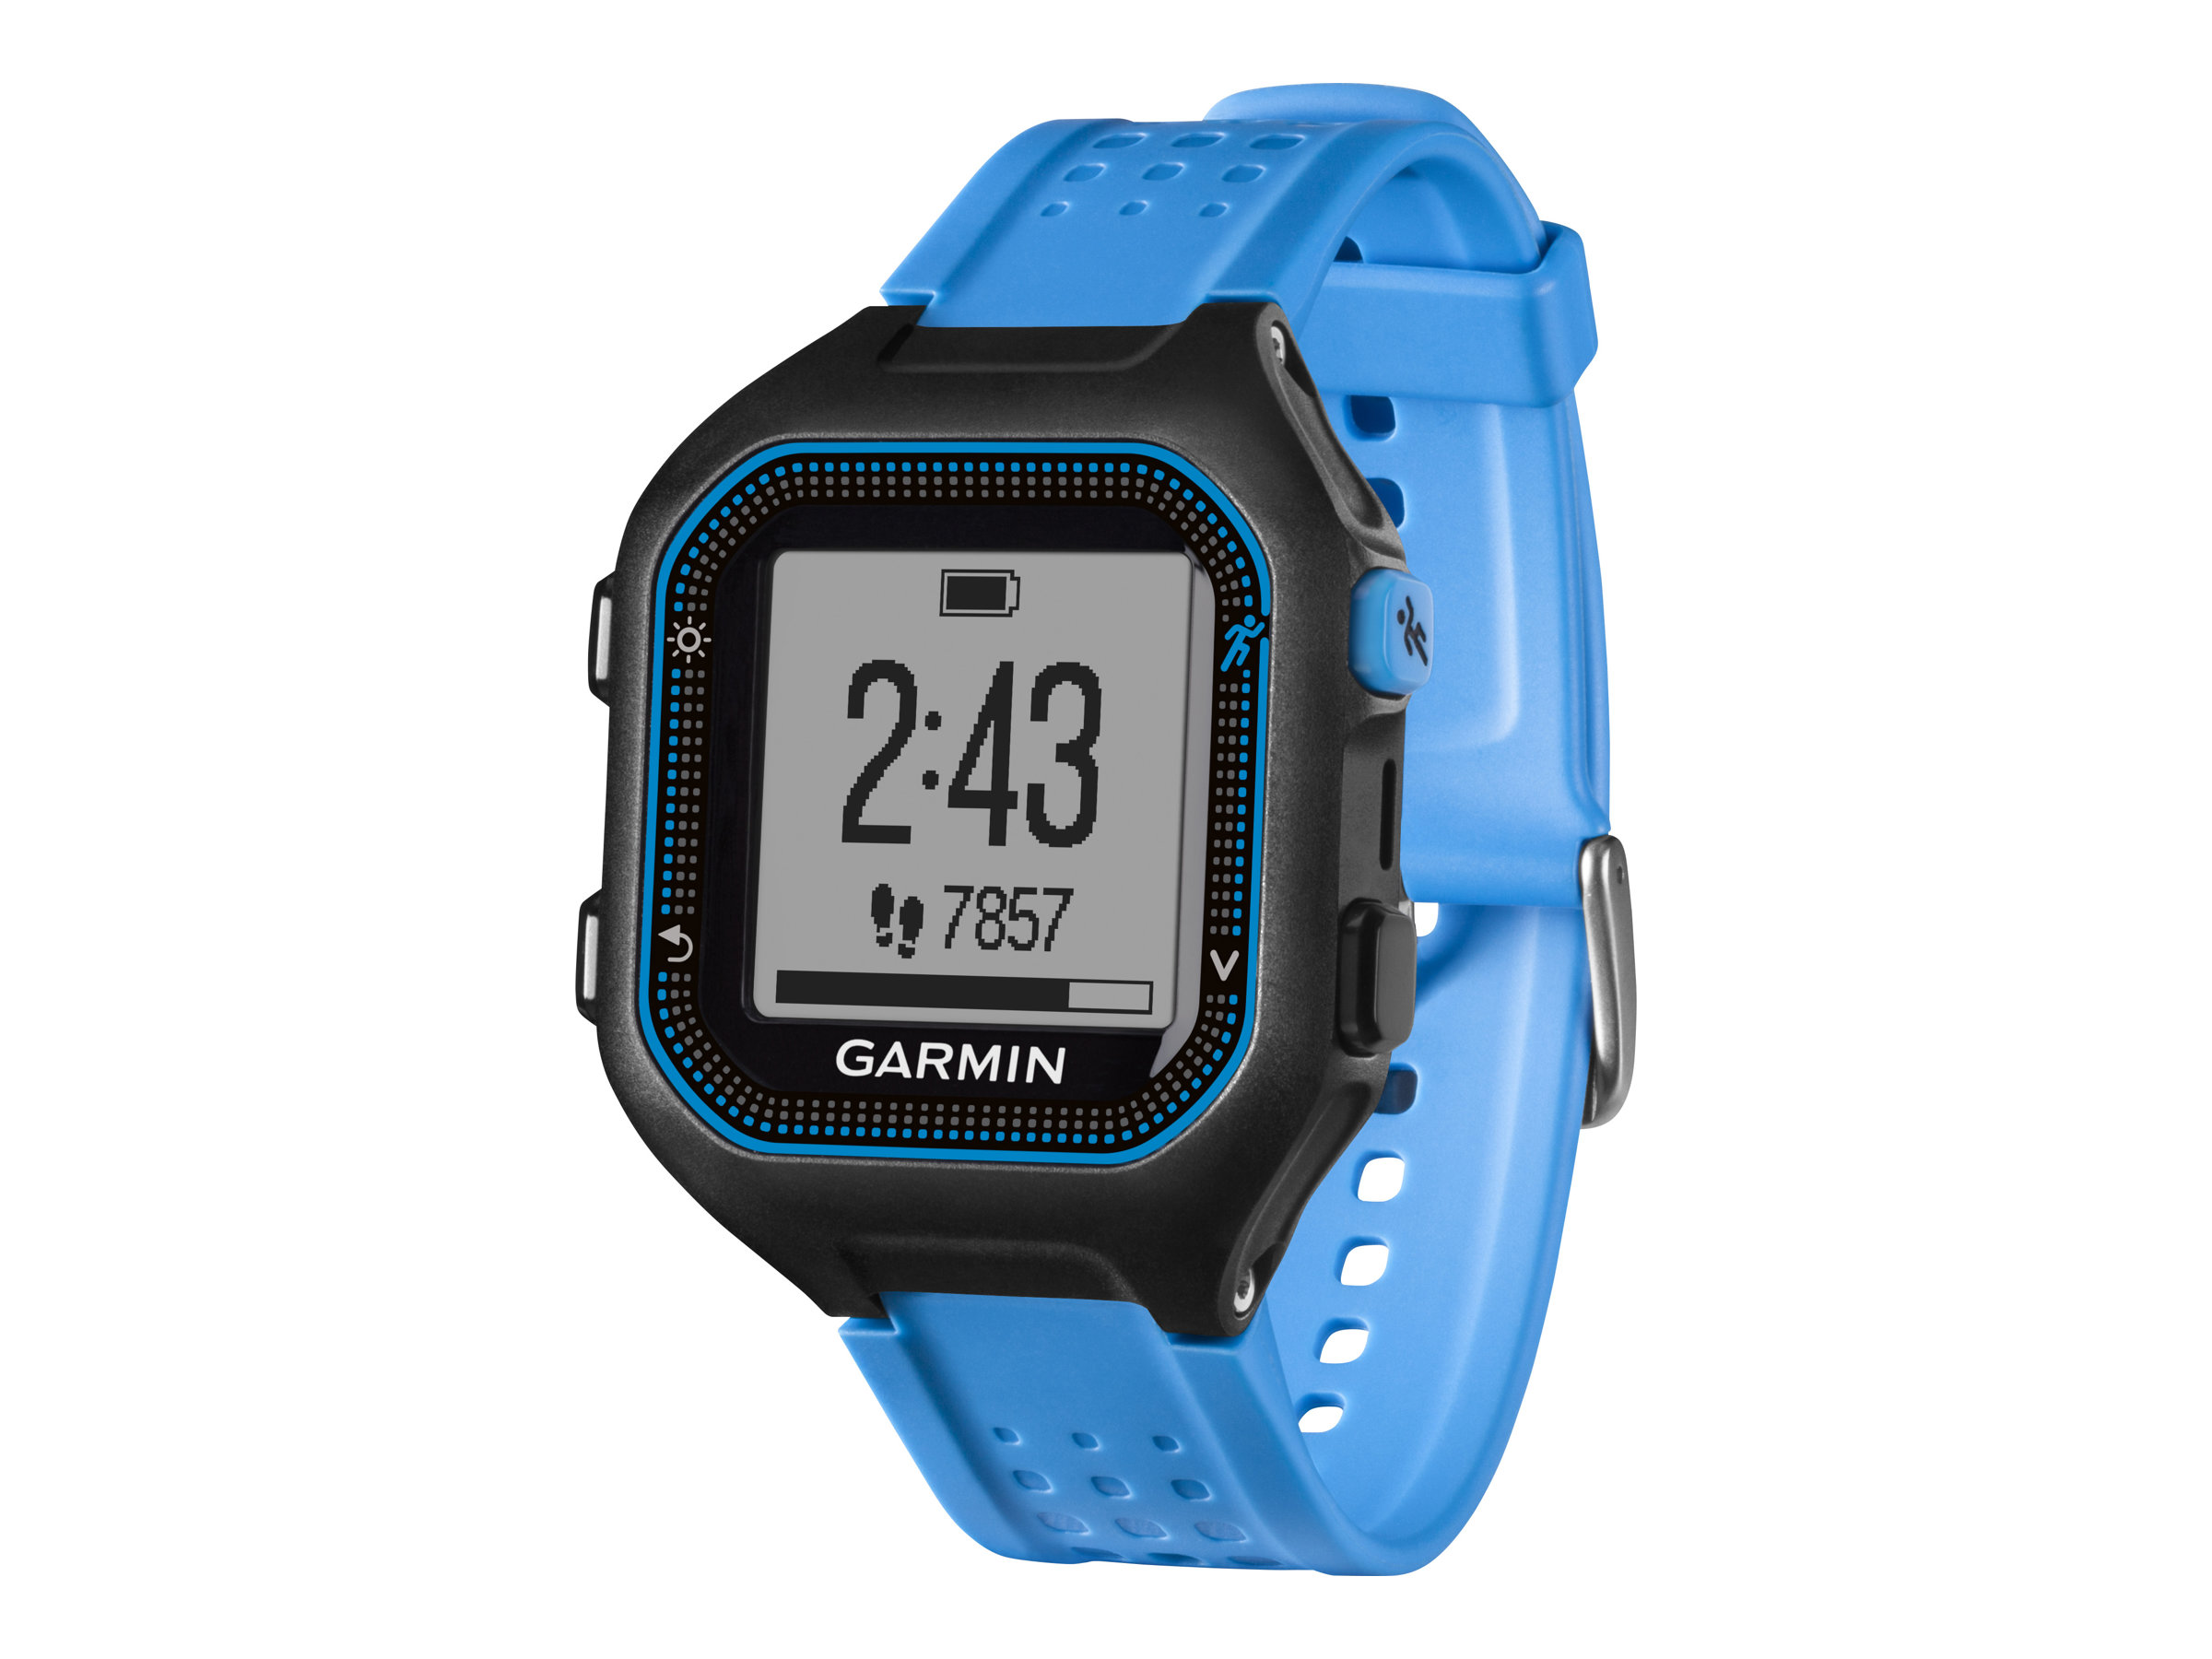 Image for Garmin Forerunner  25, Black/Blue, North America from Circuit City